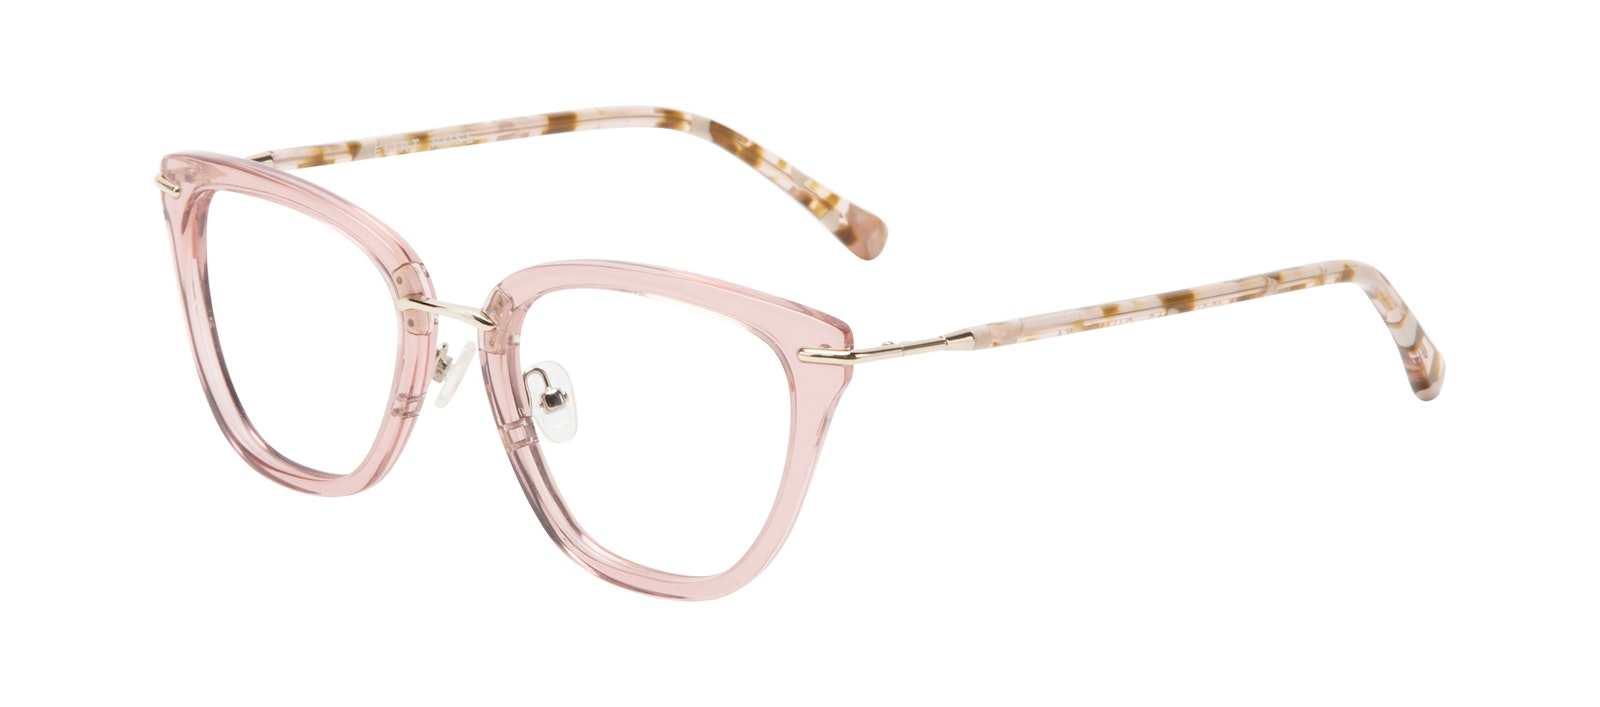 Affordable Fashion Glasses Square Eyeglasses Women Flirt Rose Tilt